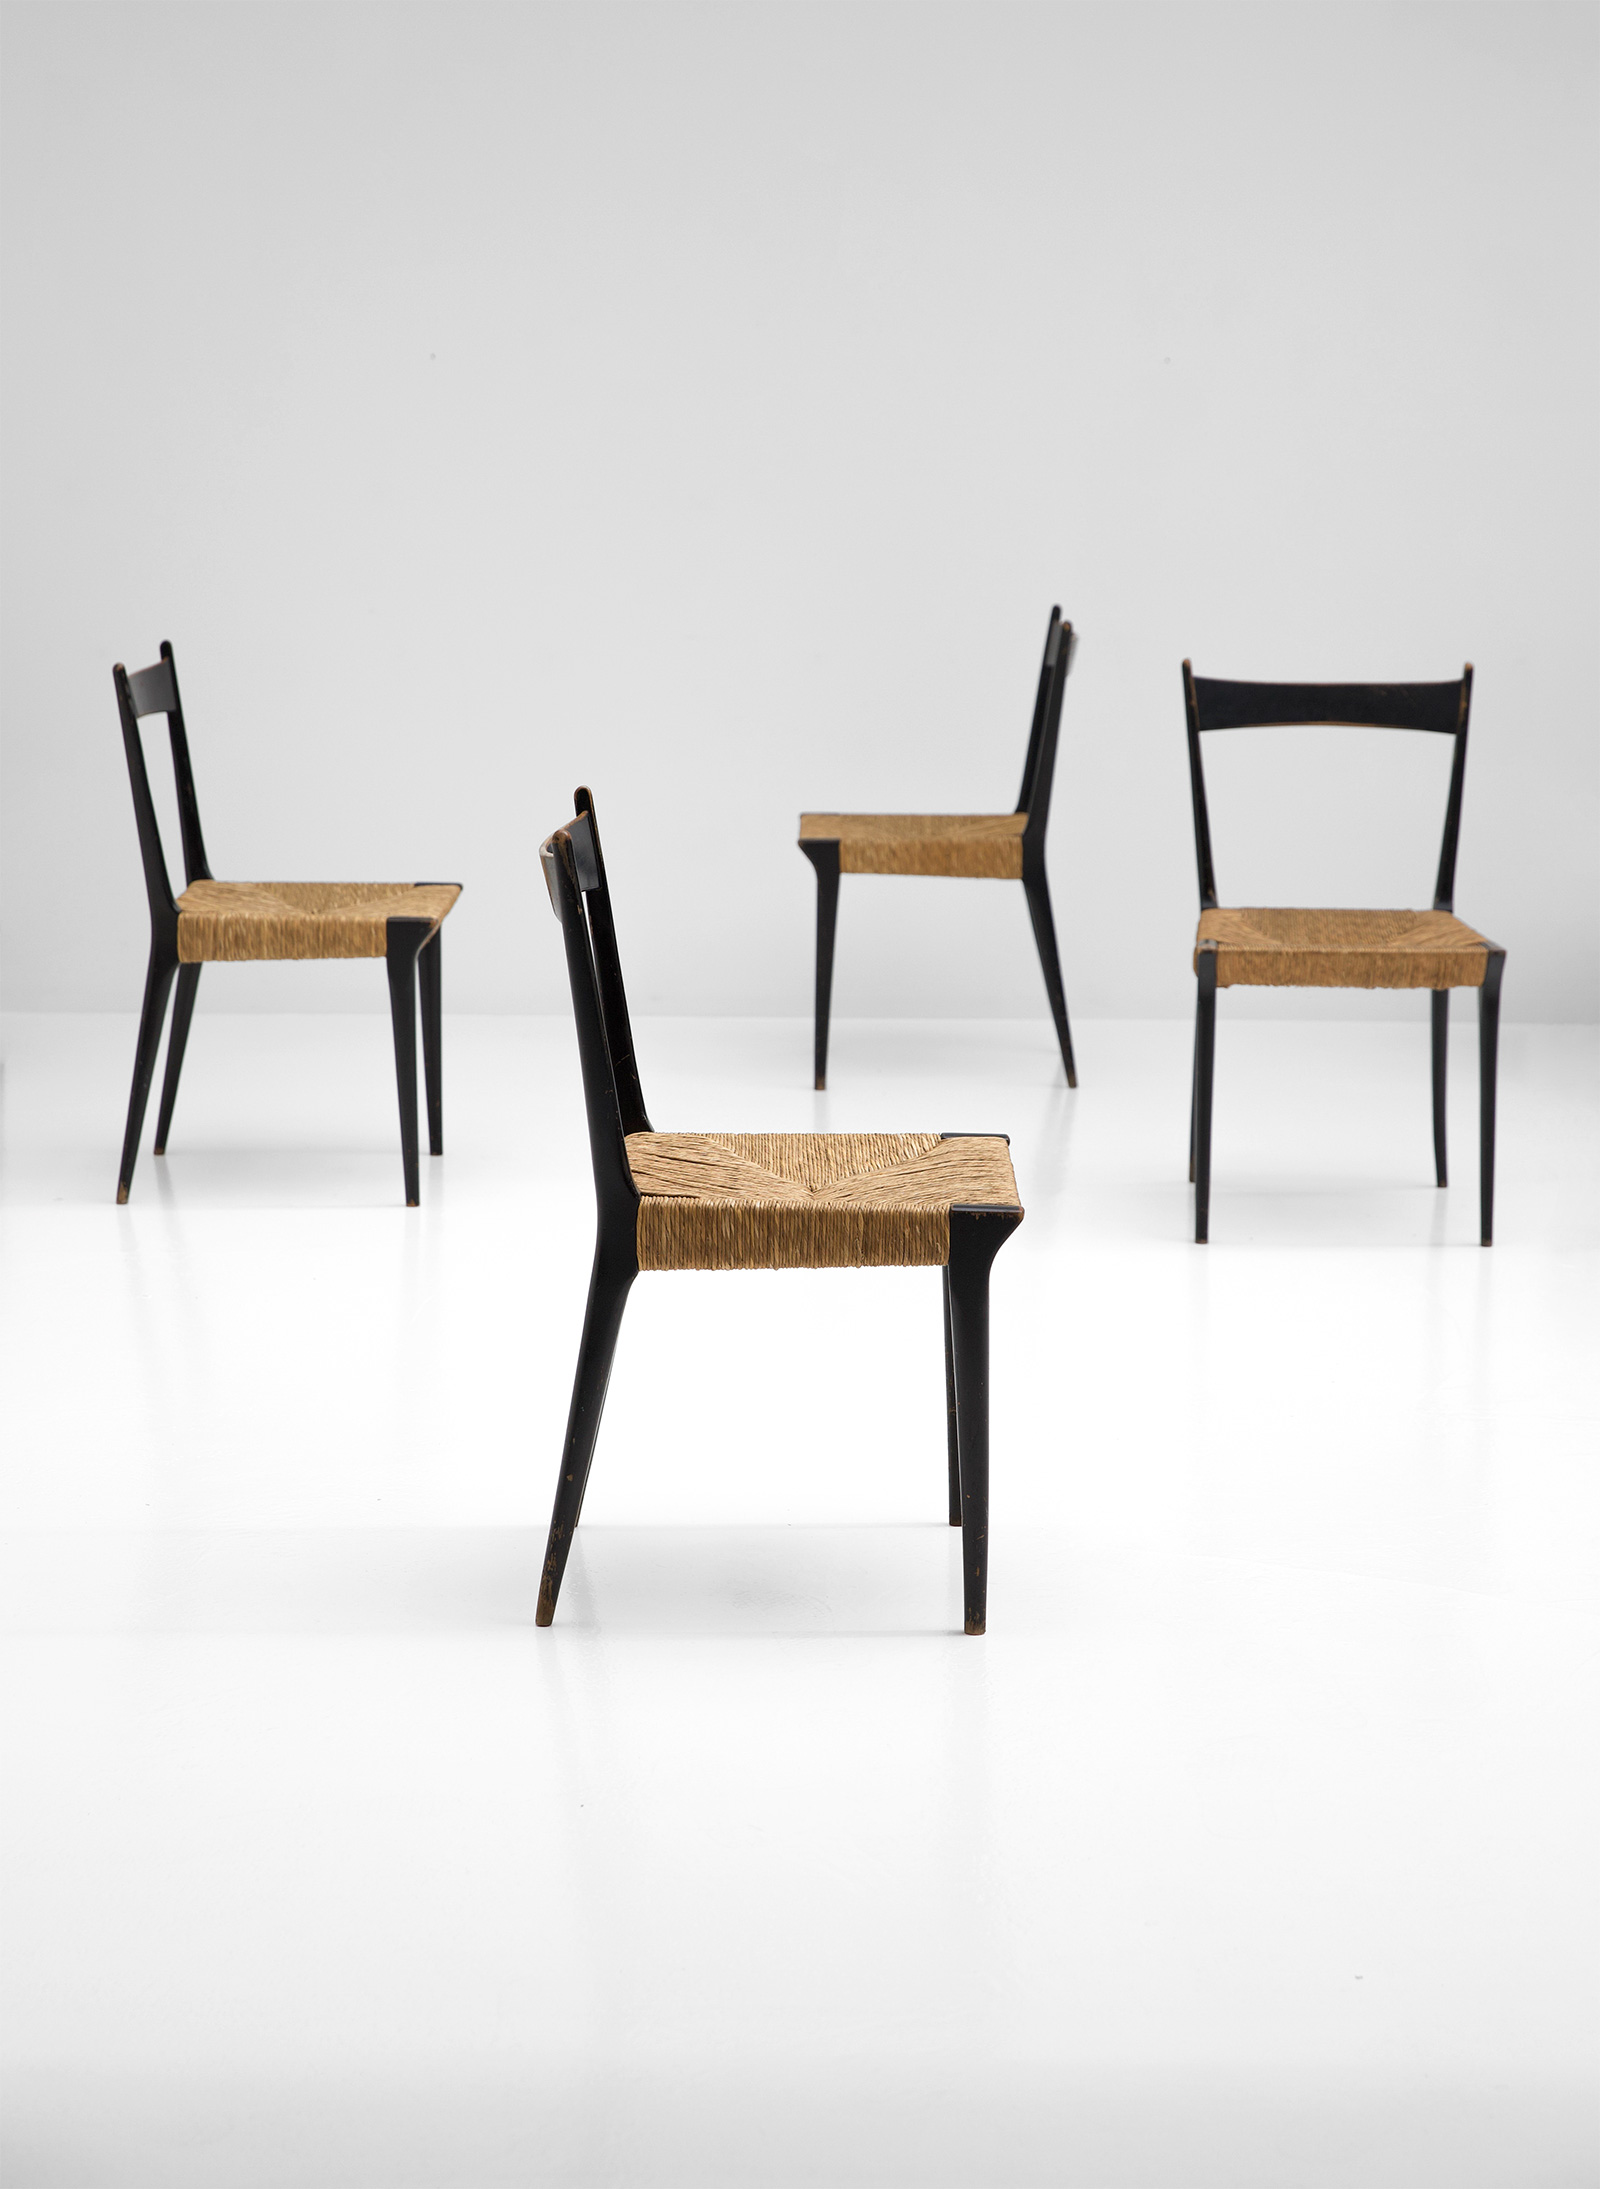 Alfred Hendrickx Woven Cane S2 Chairsimage 3